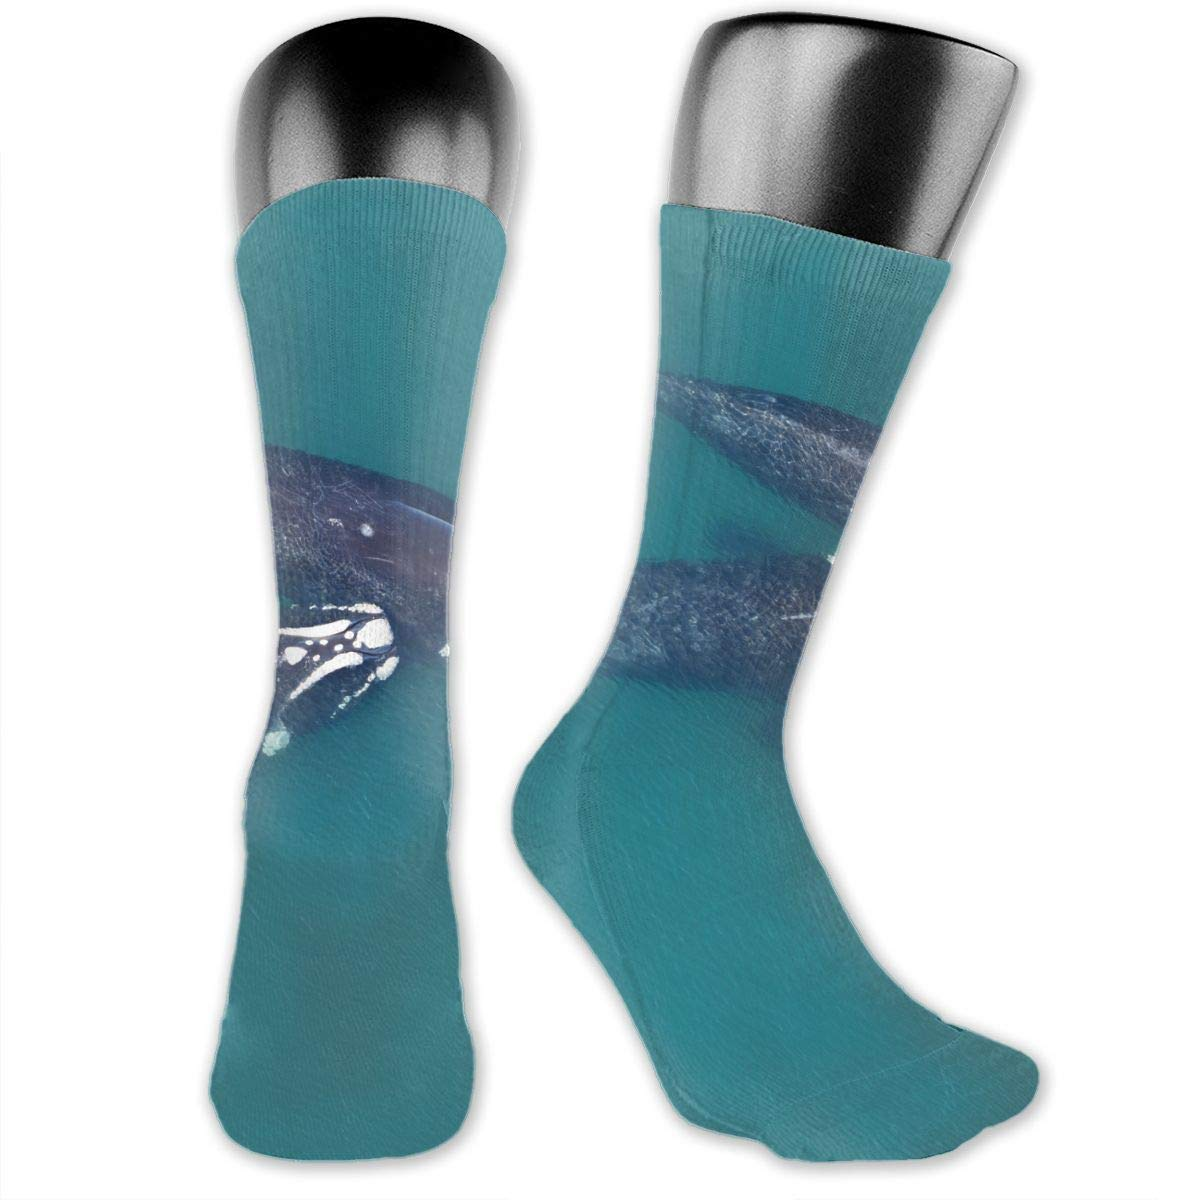 OLGCZM Marine Traffic with Whale Sailboat Fish with Cloud Waves Men Womens Thin High Ankle Casual Socks Fit Outdoor Hiking Trail